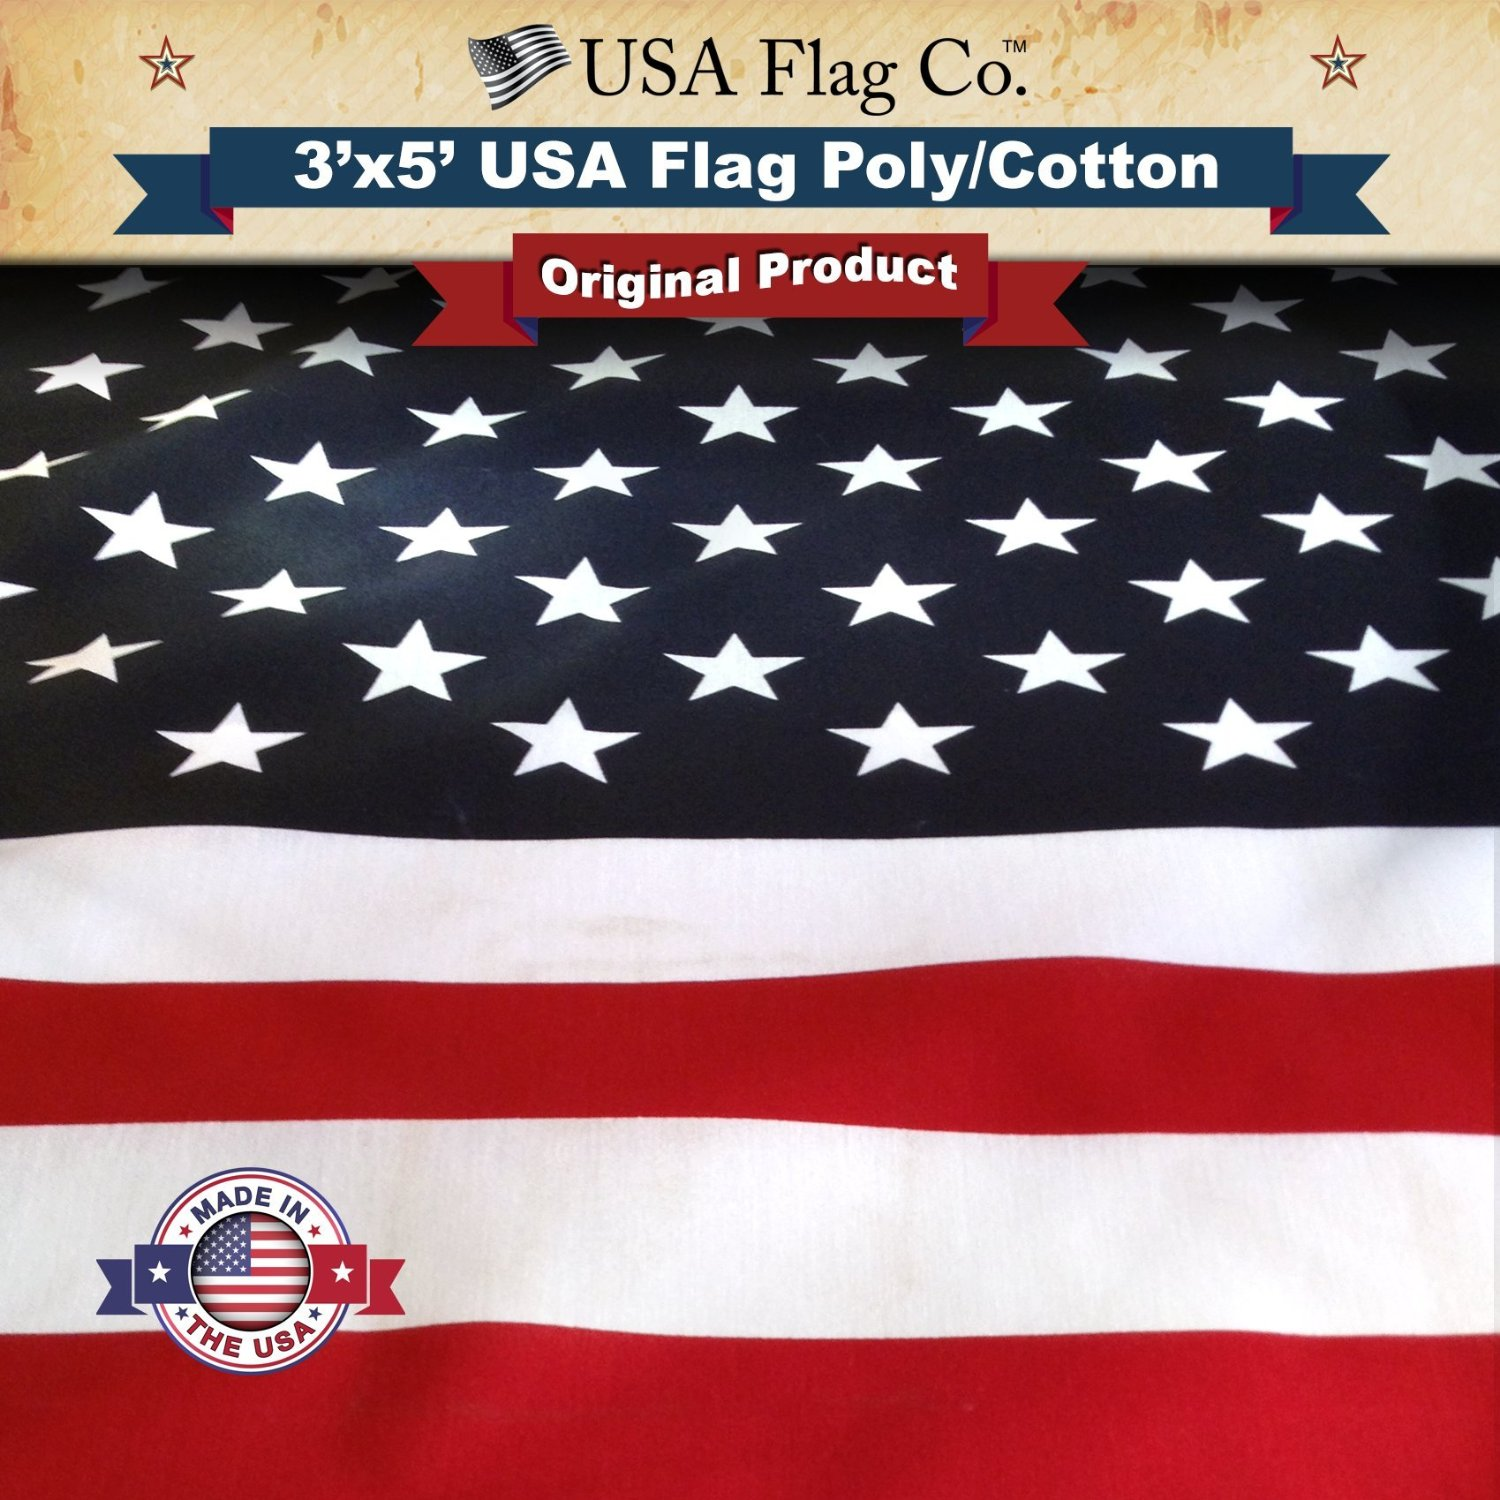 American Flag: Made in USA by USA Flag Co. - The BEST Indoor / Outdoor 3x5 US Flag!